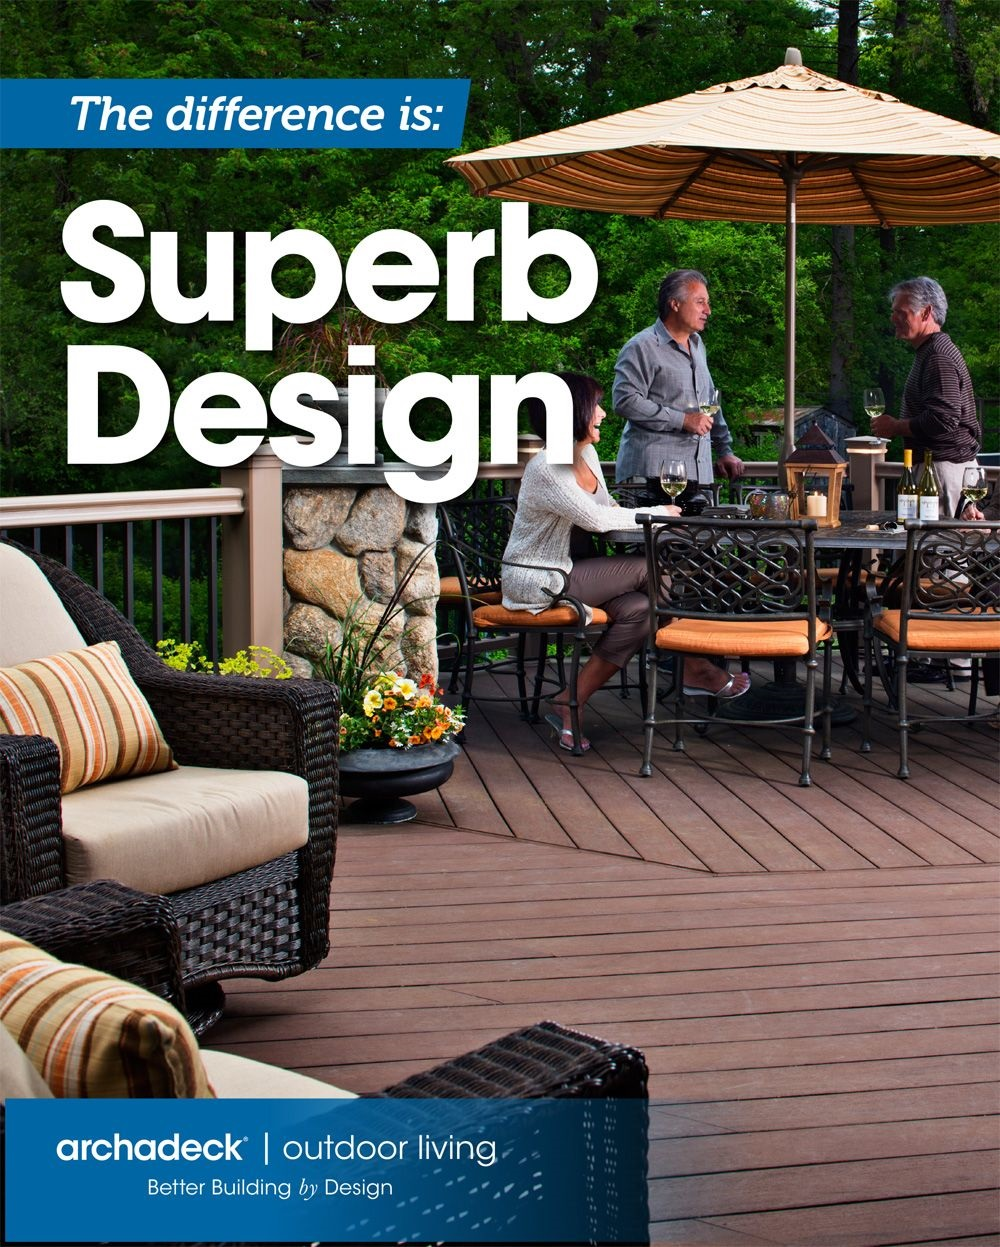 With-Archadeck-of-Nashville-you-get-a-truly-custom-designed-outdoor-structure-created-just-for-you